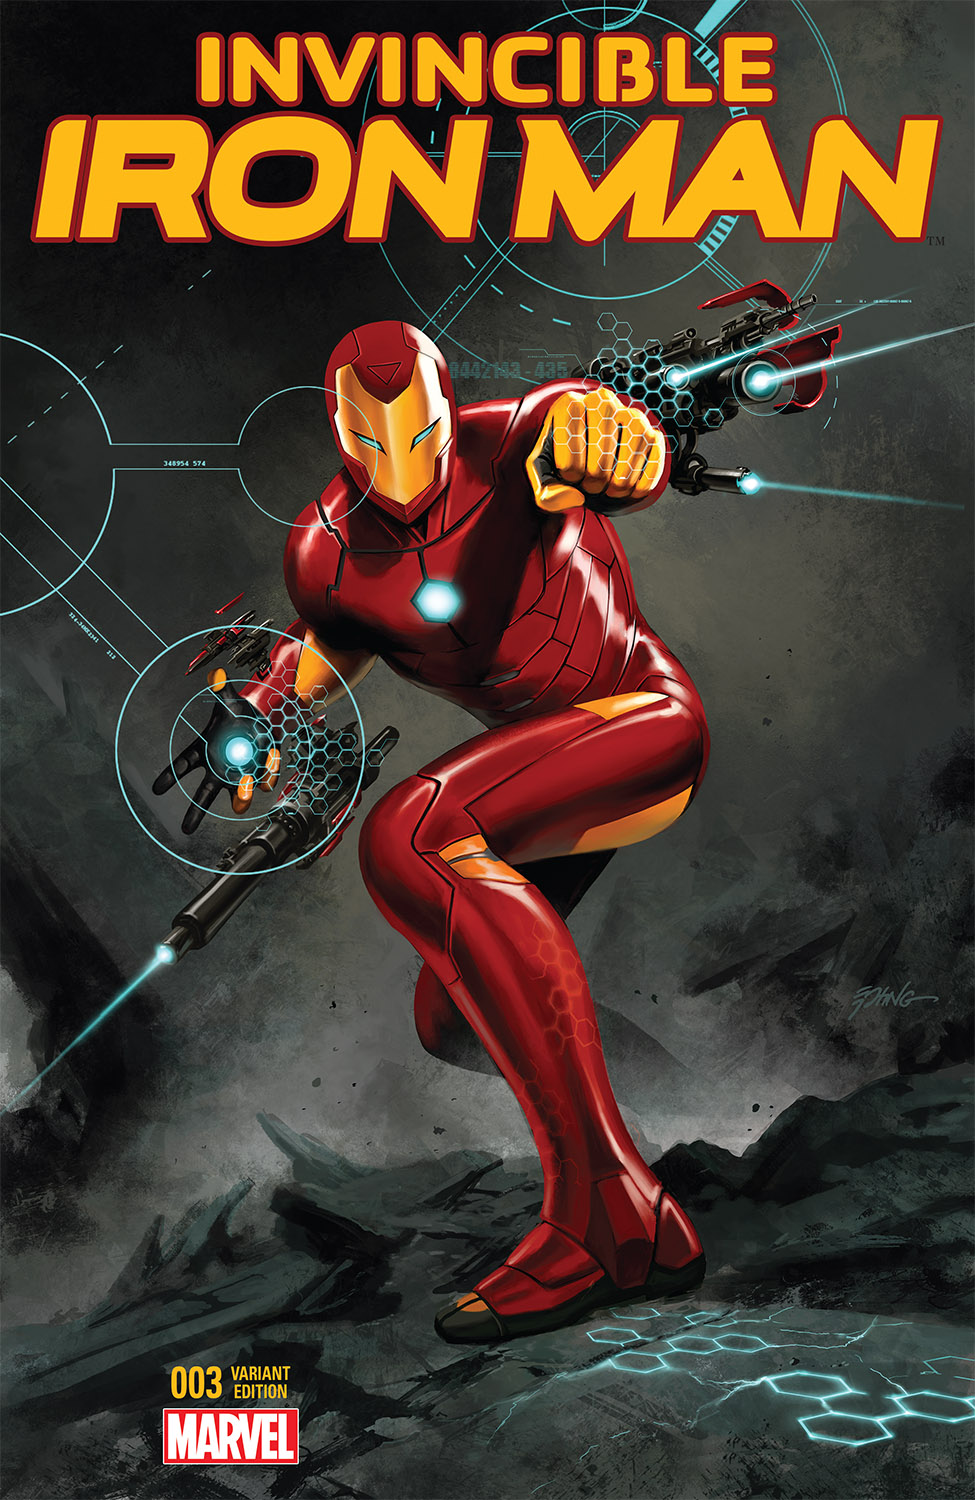 Invincible Iron Man (2015) #3 (Epting Variant)